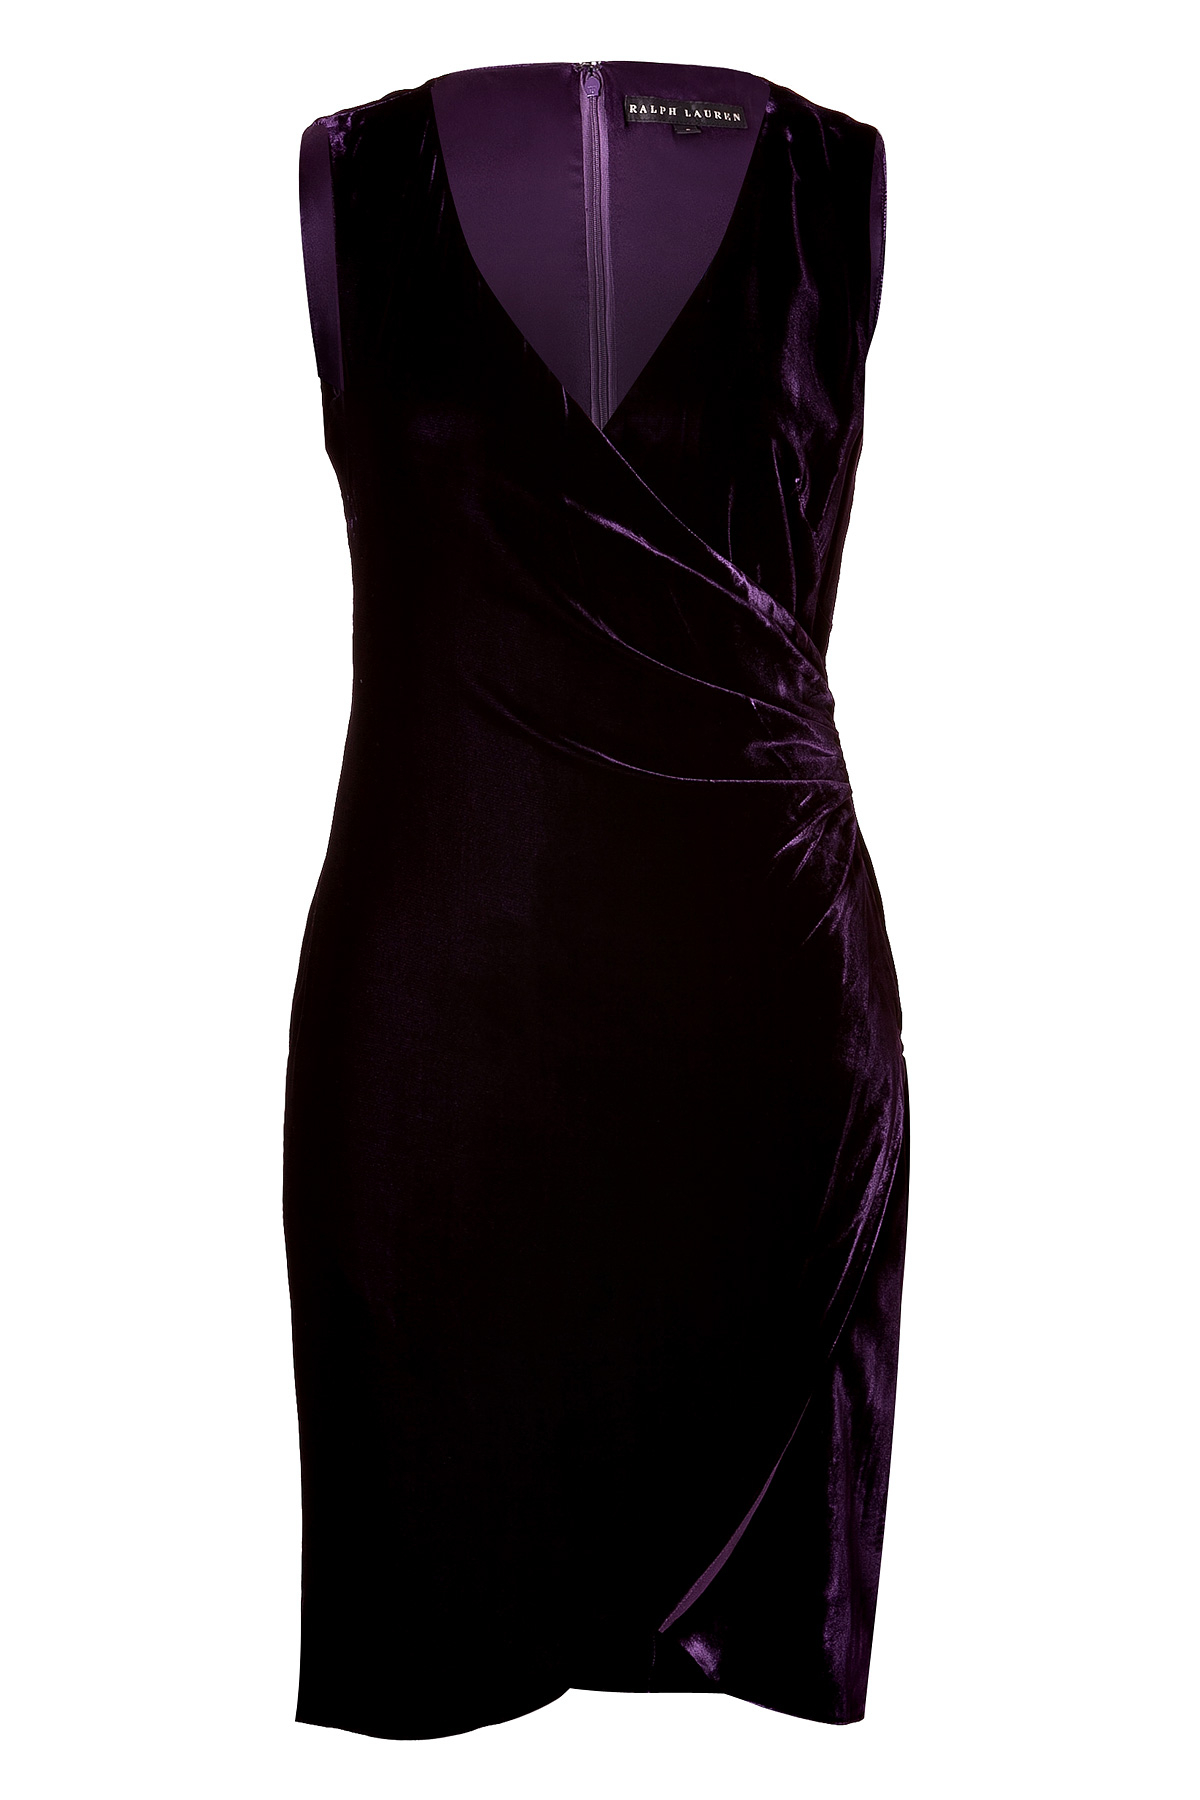 lyst ralph lauren black label silkblend velvet dress in